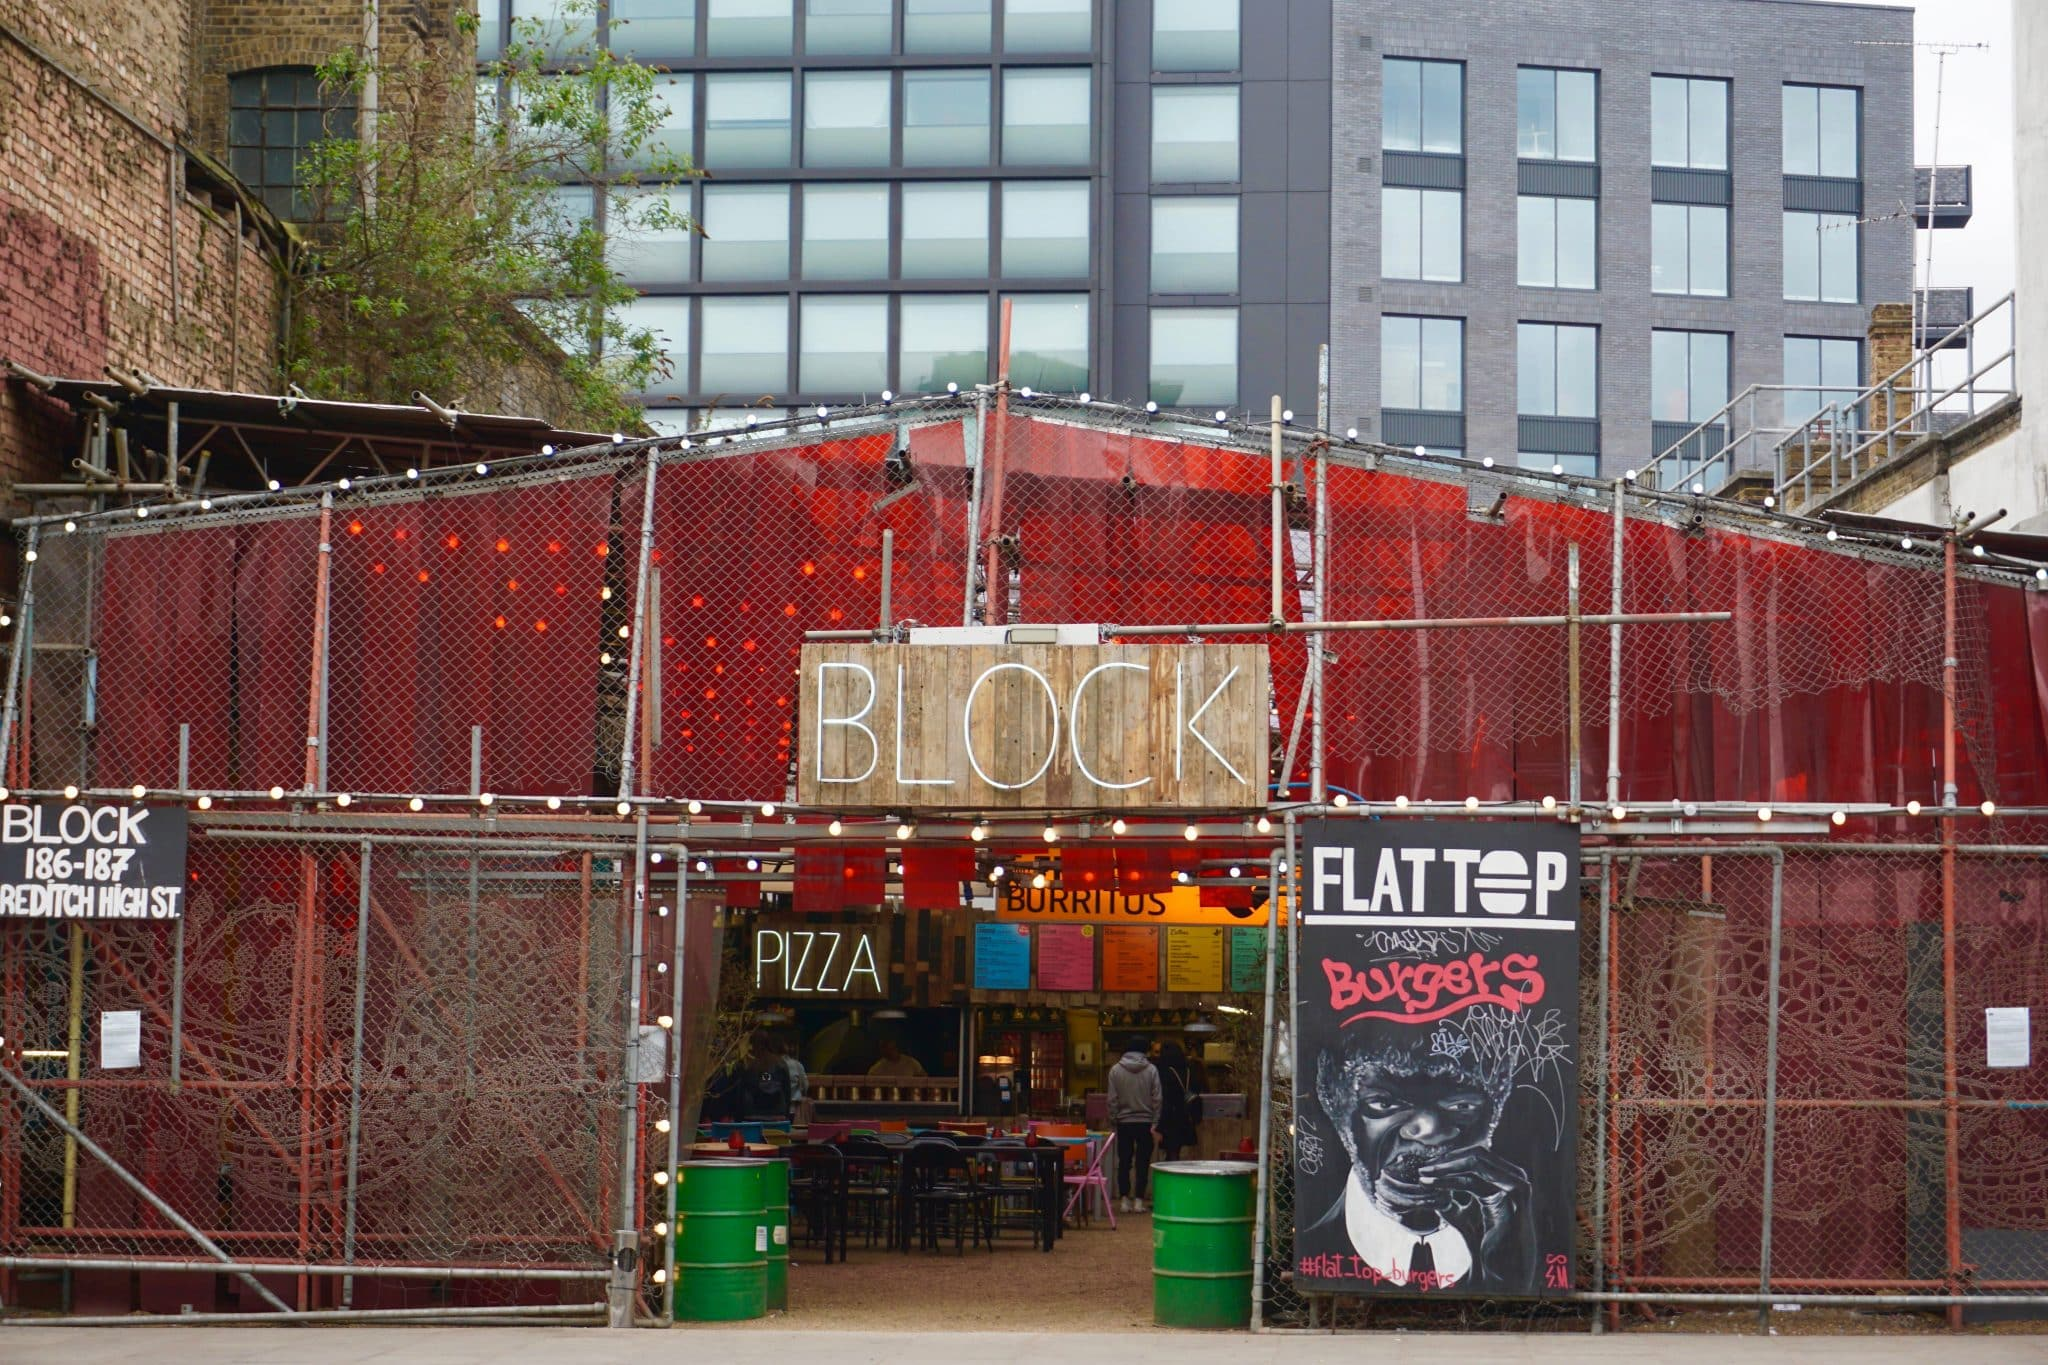 Block near Shoreditch highstreet London with various street food vendors in an industrial setting.